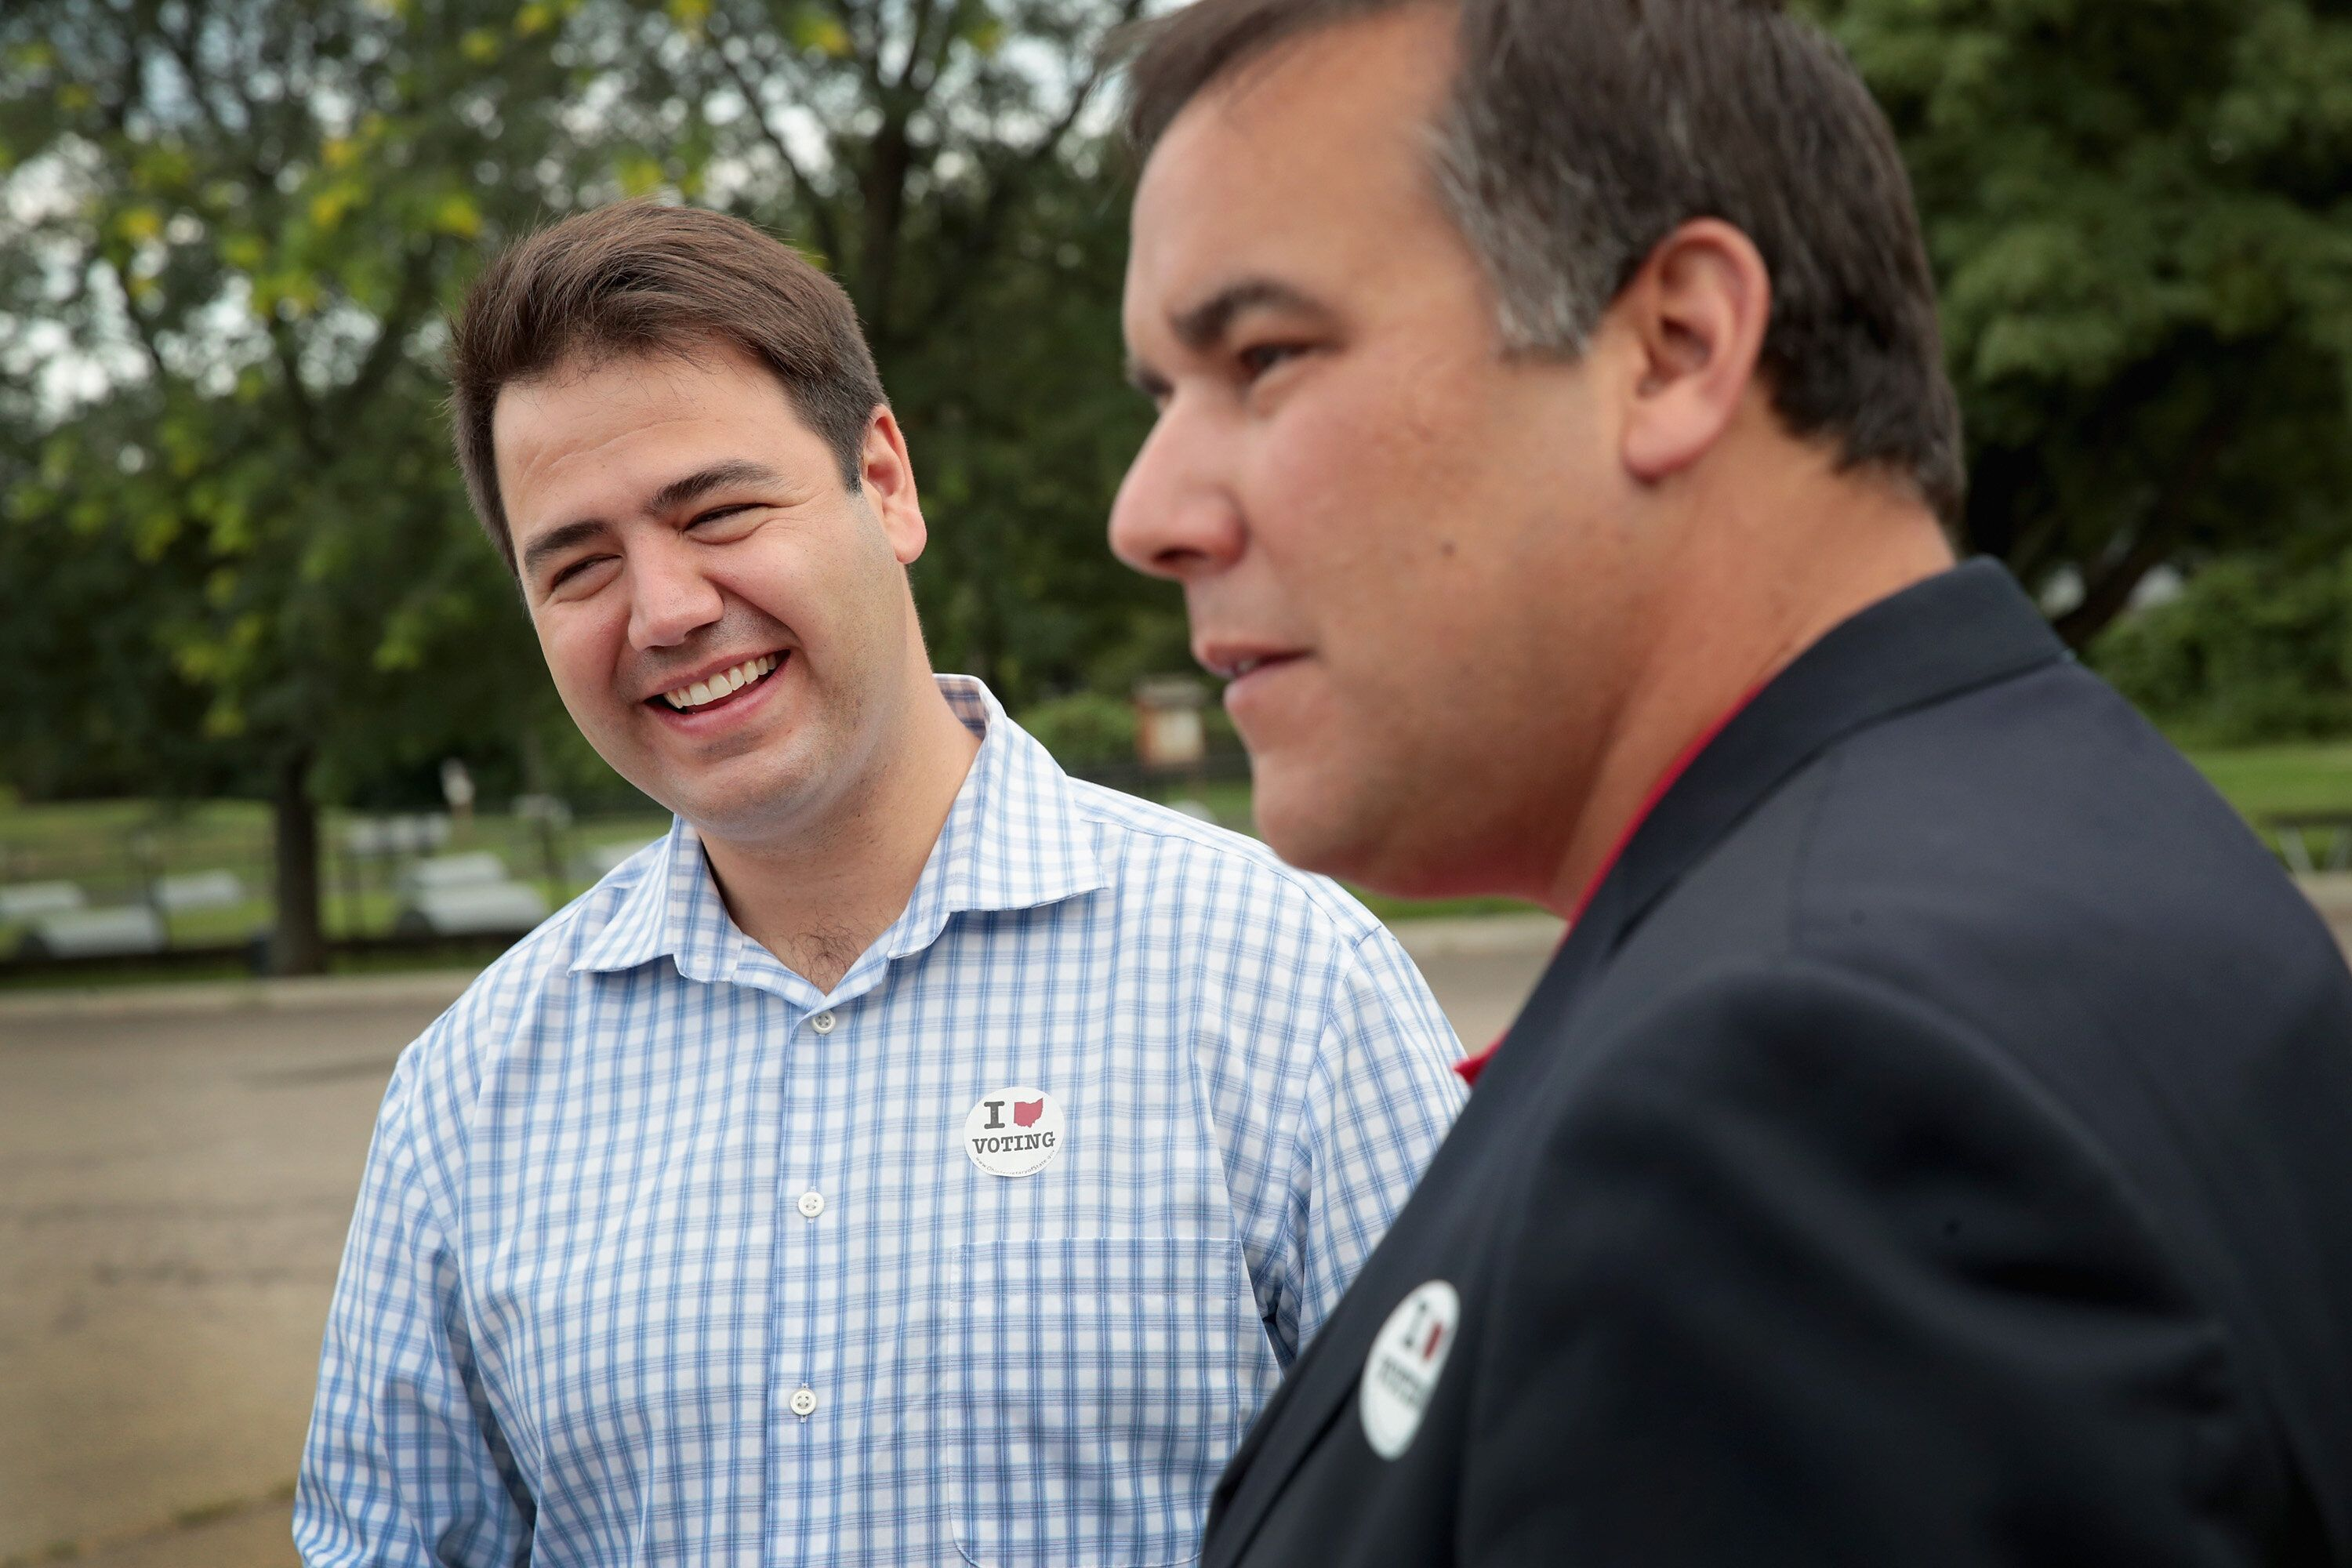 Danny O'Connor, left, stands with Columbus Mayor Andrew Ginther in August 2018. O'Connor's praise for Ginther's handling of p